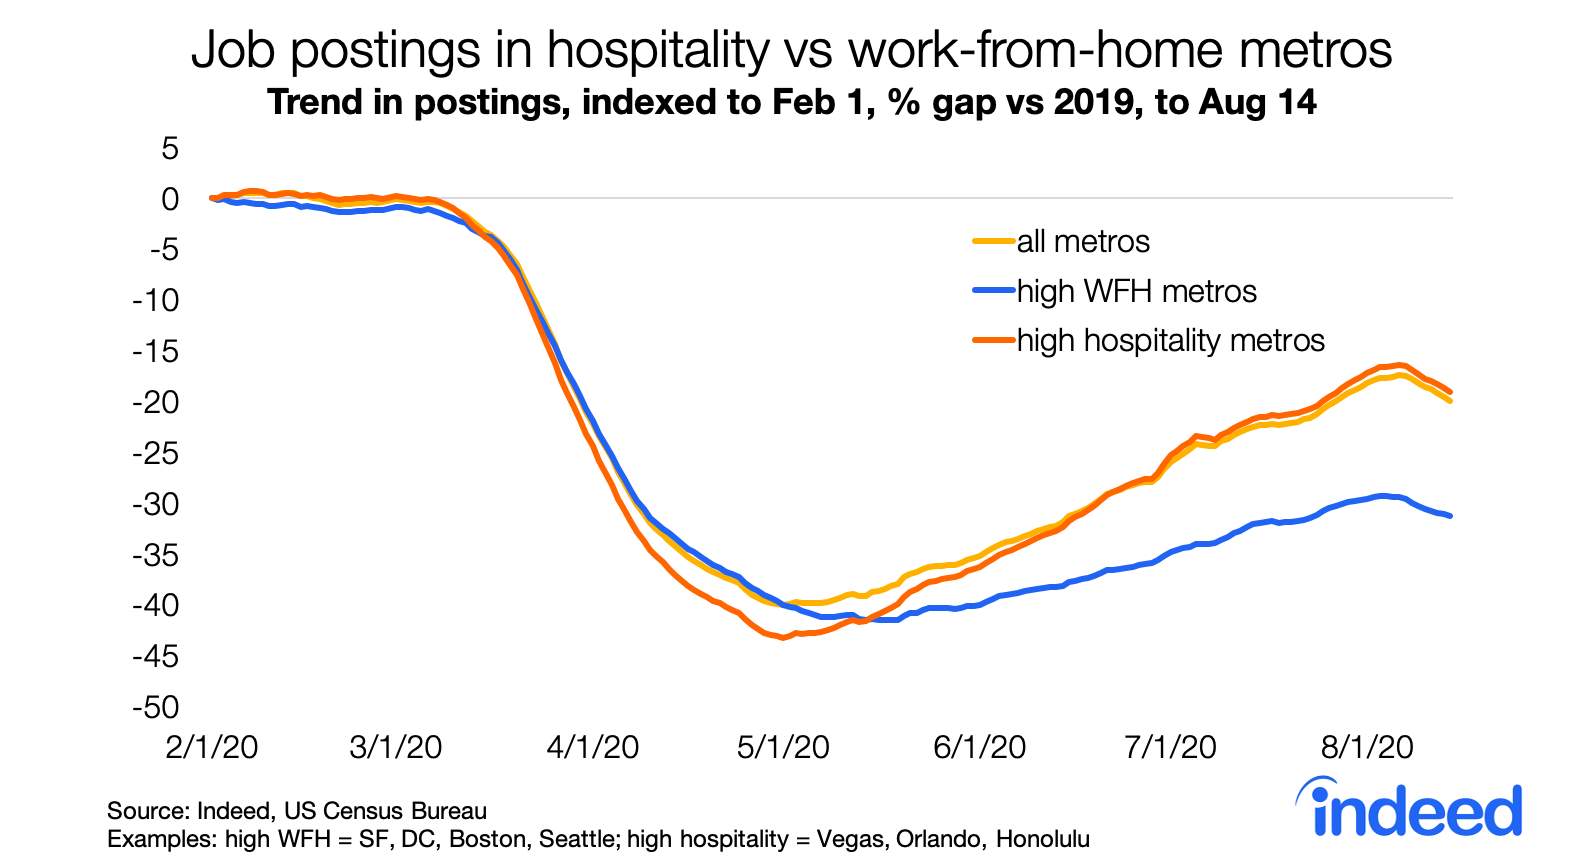 Trend in job postings in hospitality vs work-from-home jobs